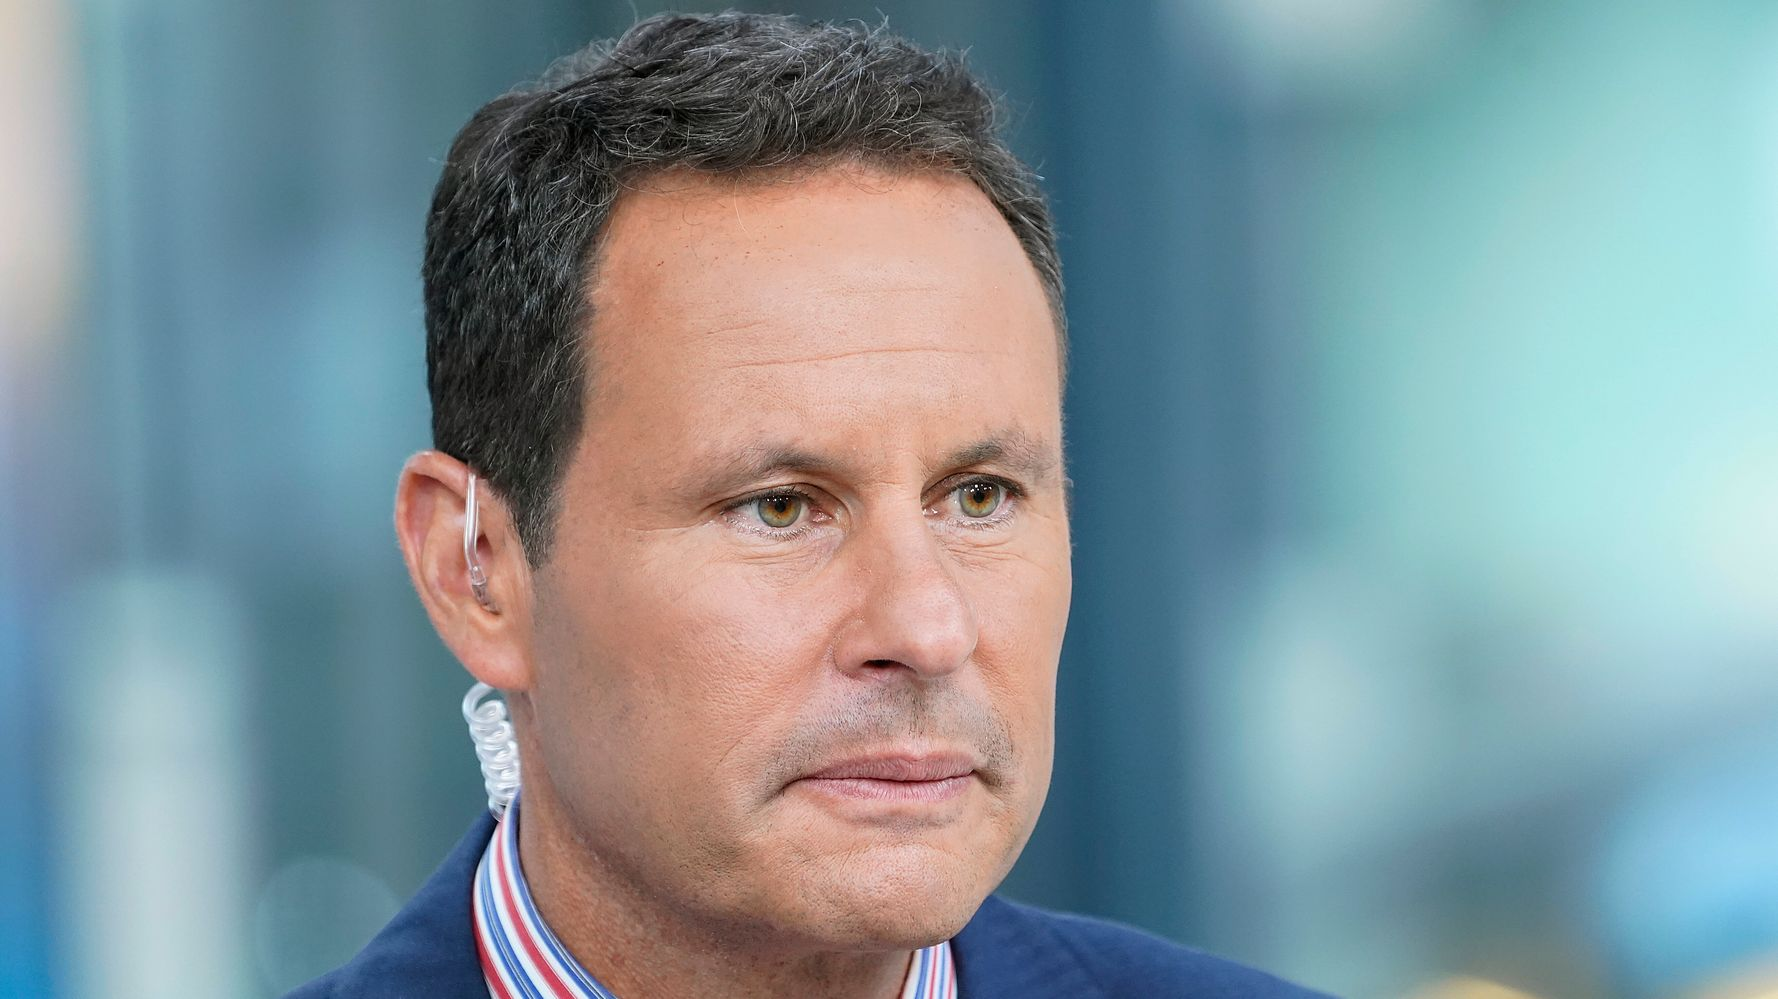 Westlake Legal Group 5d4f5ec62200005500f4ed74 Restaurant Owner Closing To Protest Event By Fox News 'Asshat' Brian Kilmeade